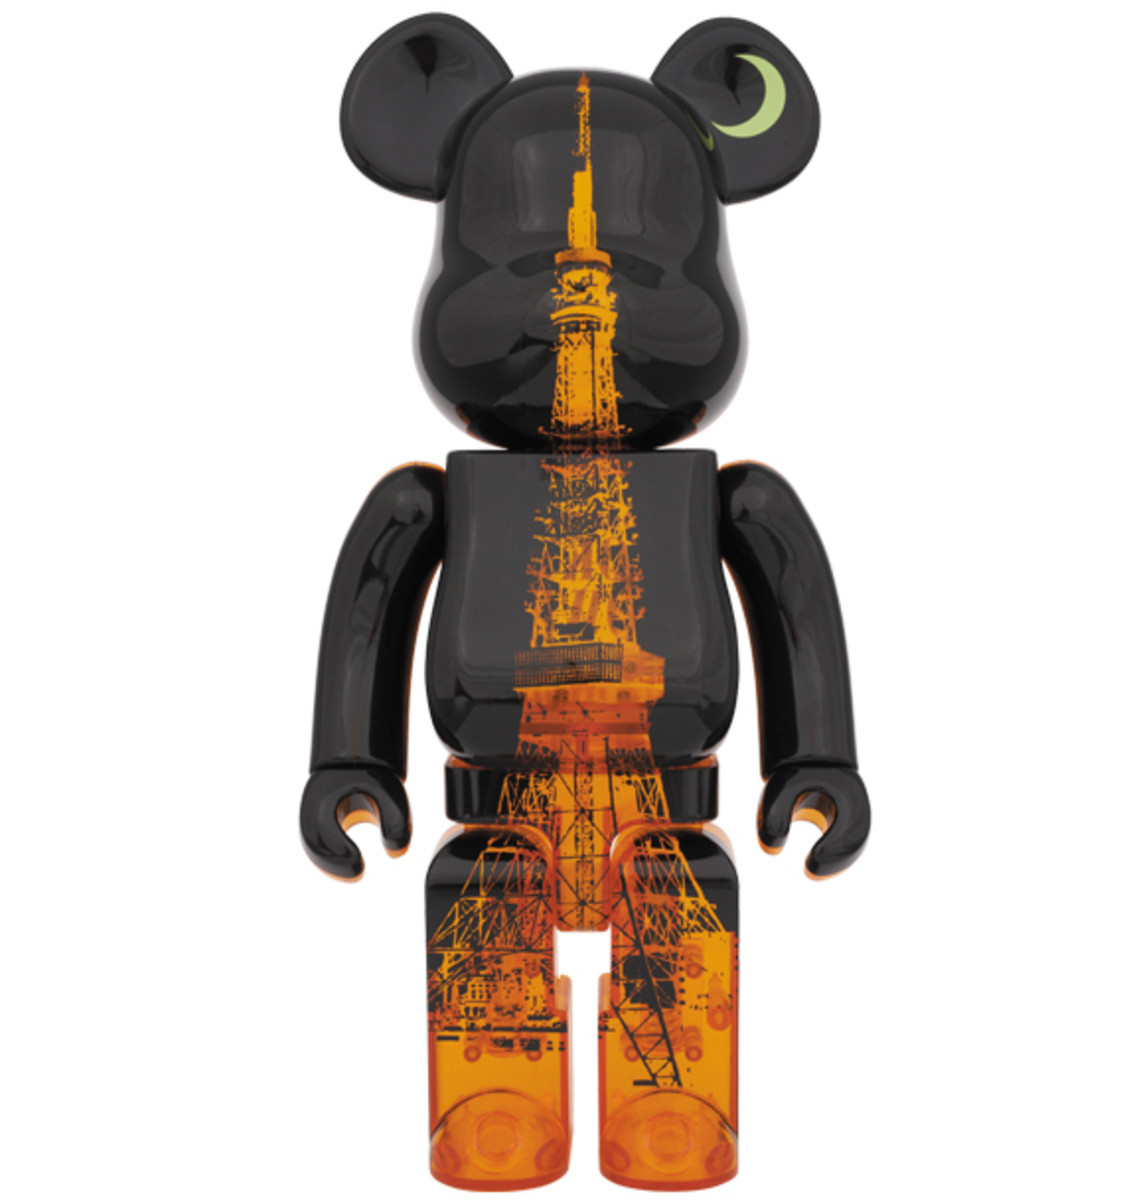 medicom-toy-tokyo-tower-55th-anniversary-bearbrick-01